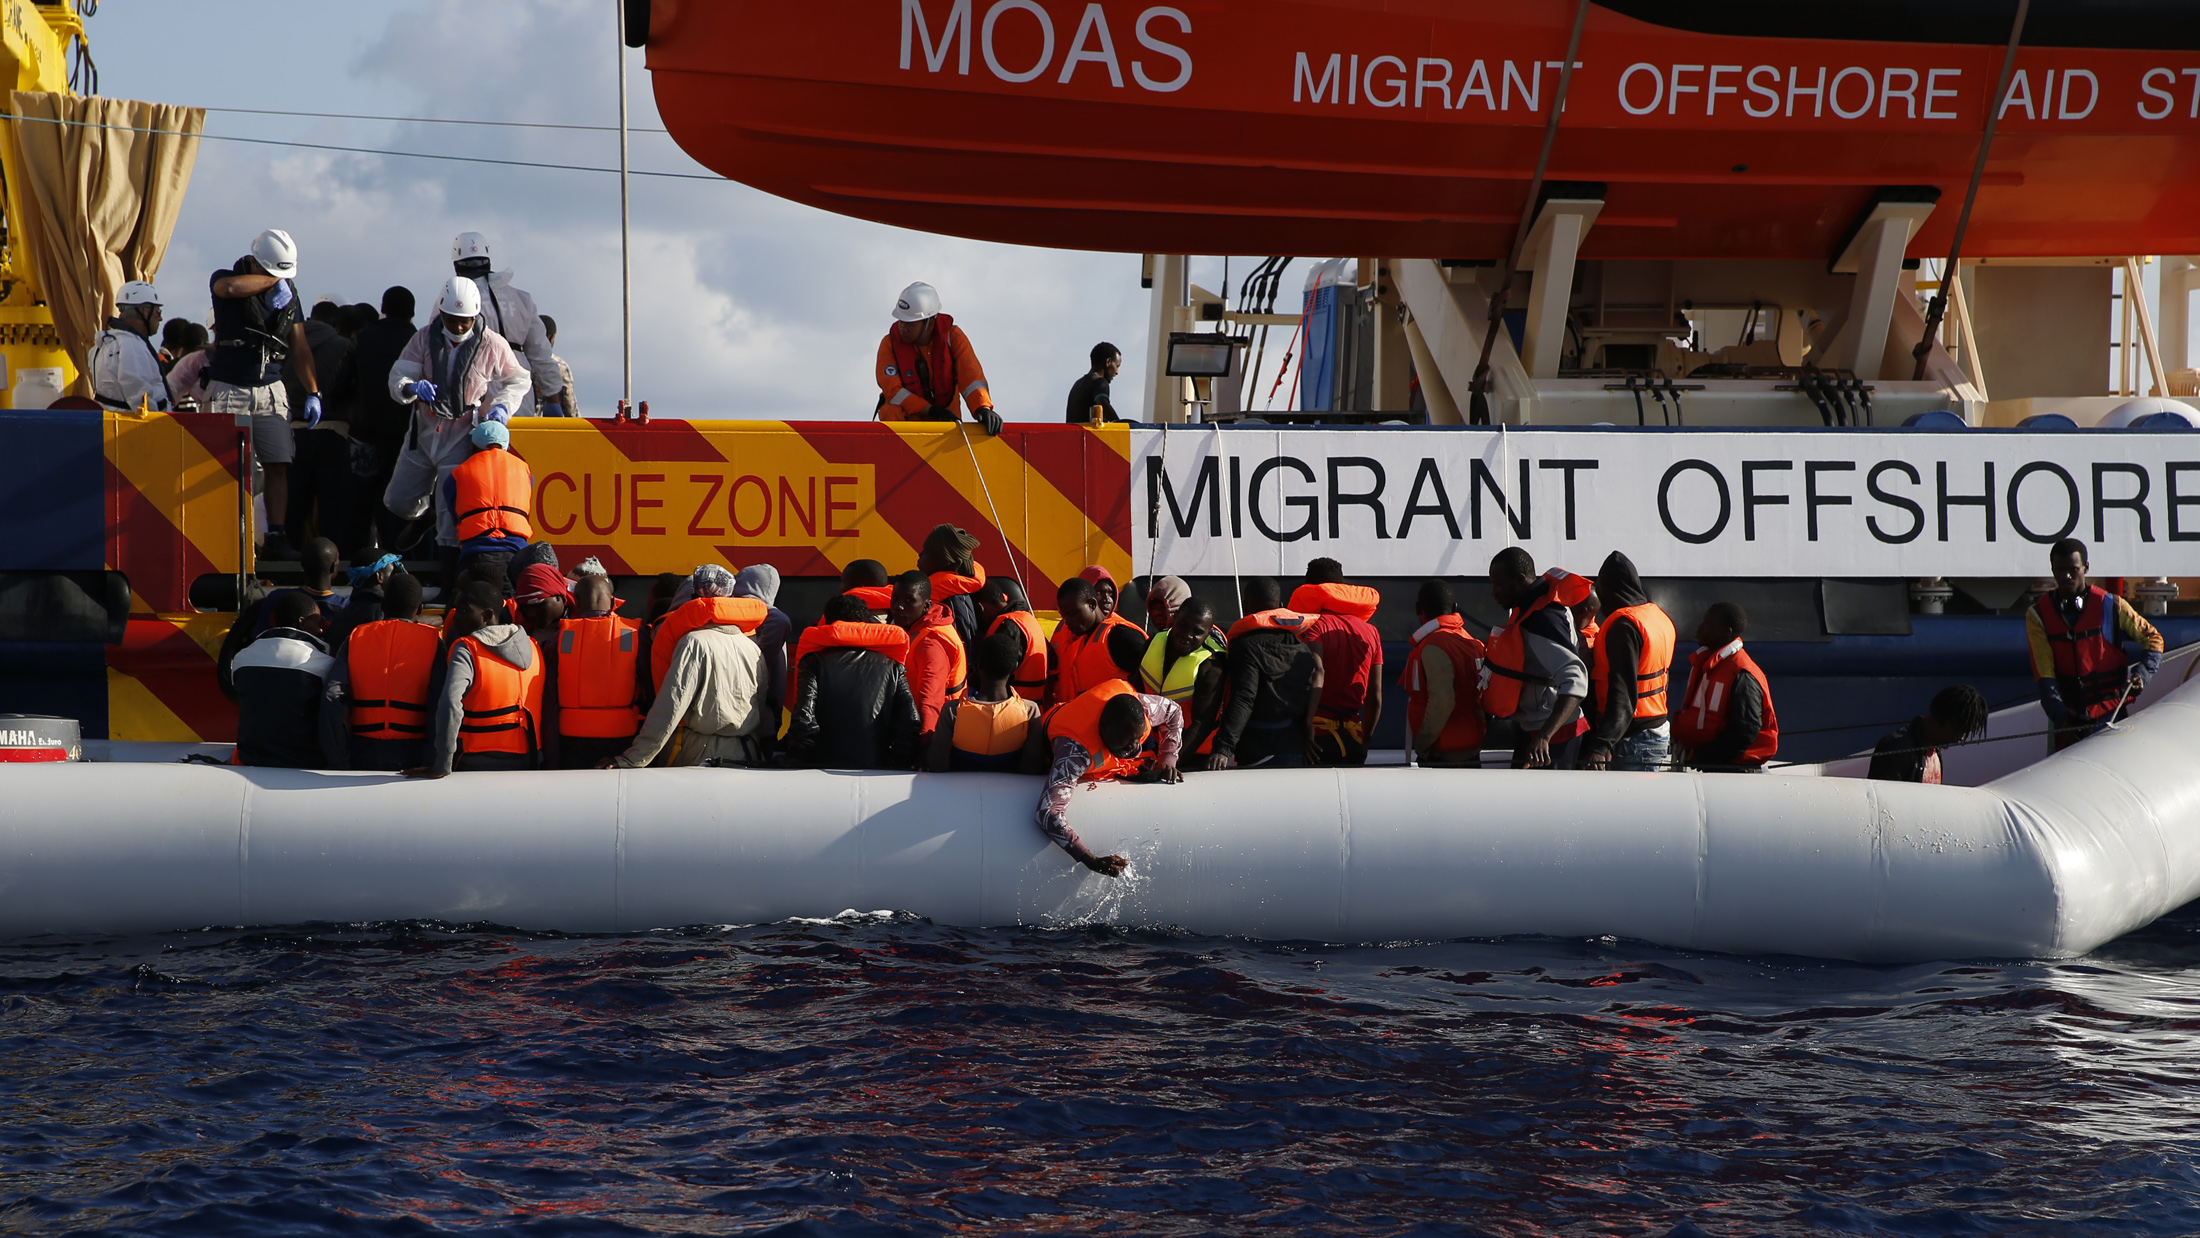 Migrants in a dinghy climb aboard the Migrant Offshore Aid Station (MOAS) ship Topaz Responder, some 20 nautical miles off the coast of Libya, June 23, 2016.